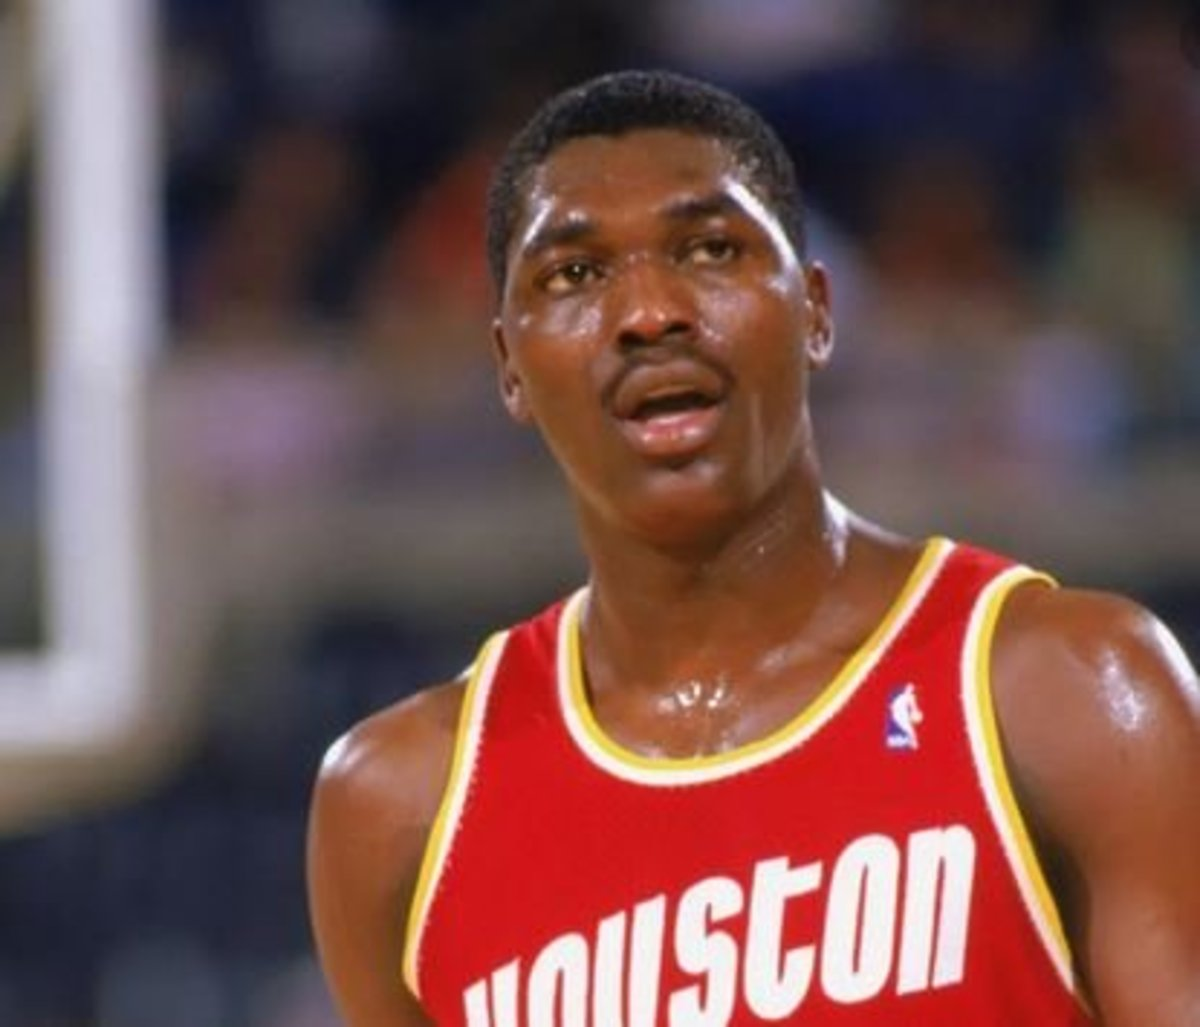 Hakeem Olajuwon, Hall of Famer